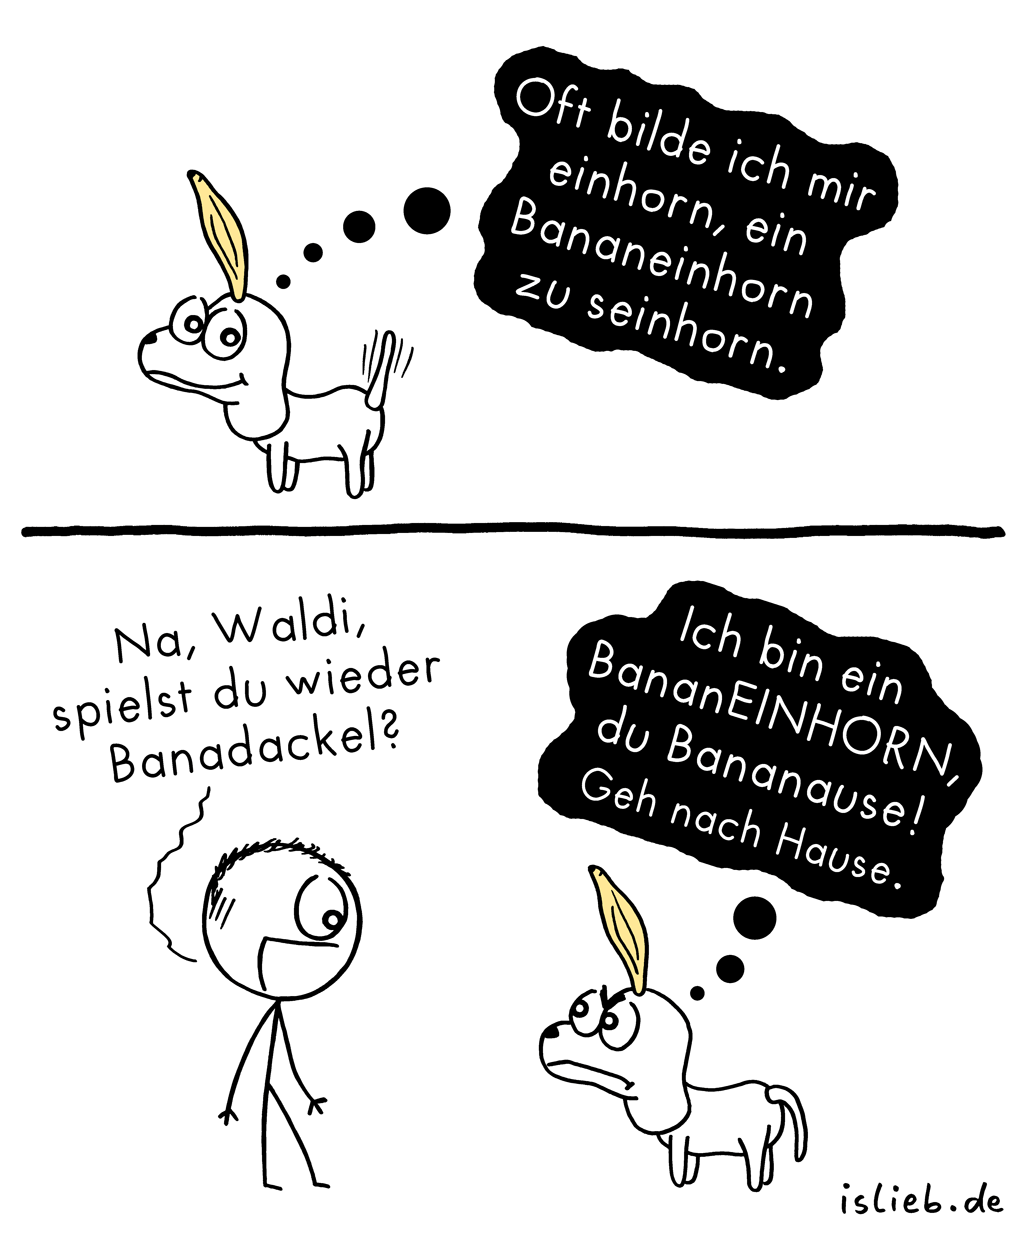 Bananeinhorn | Dackel-Comic | is lieb?